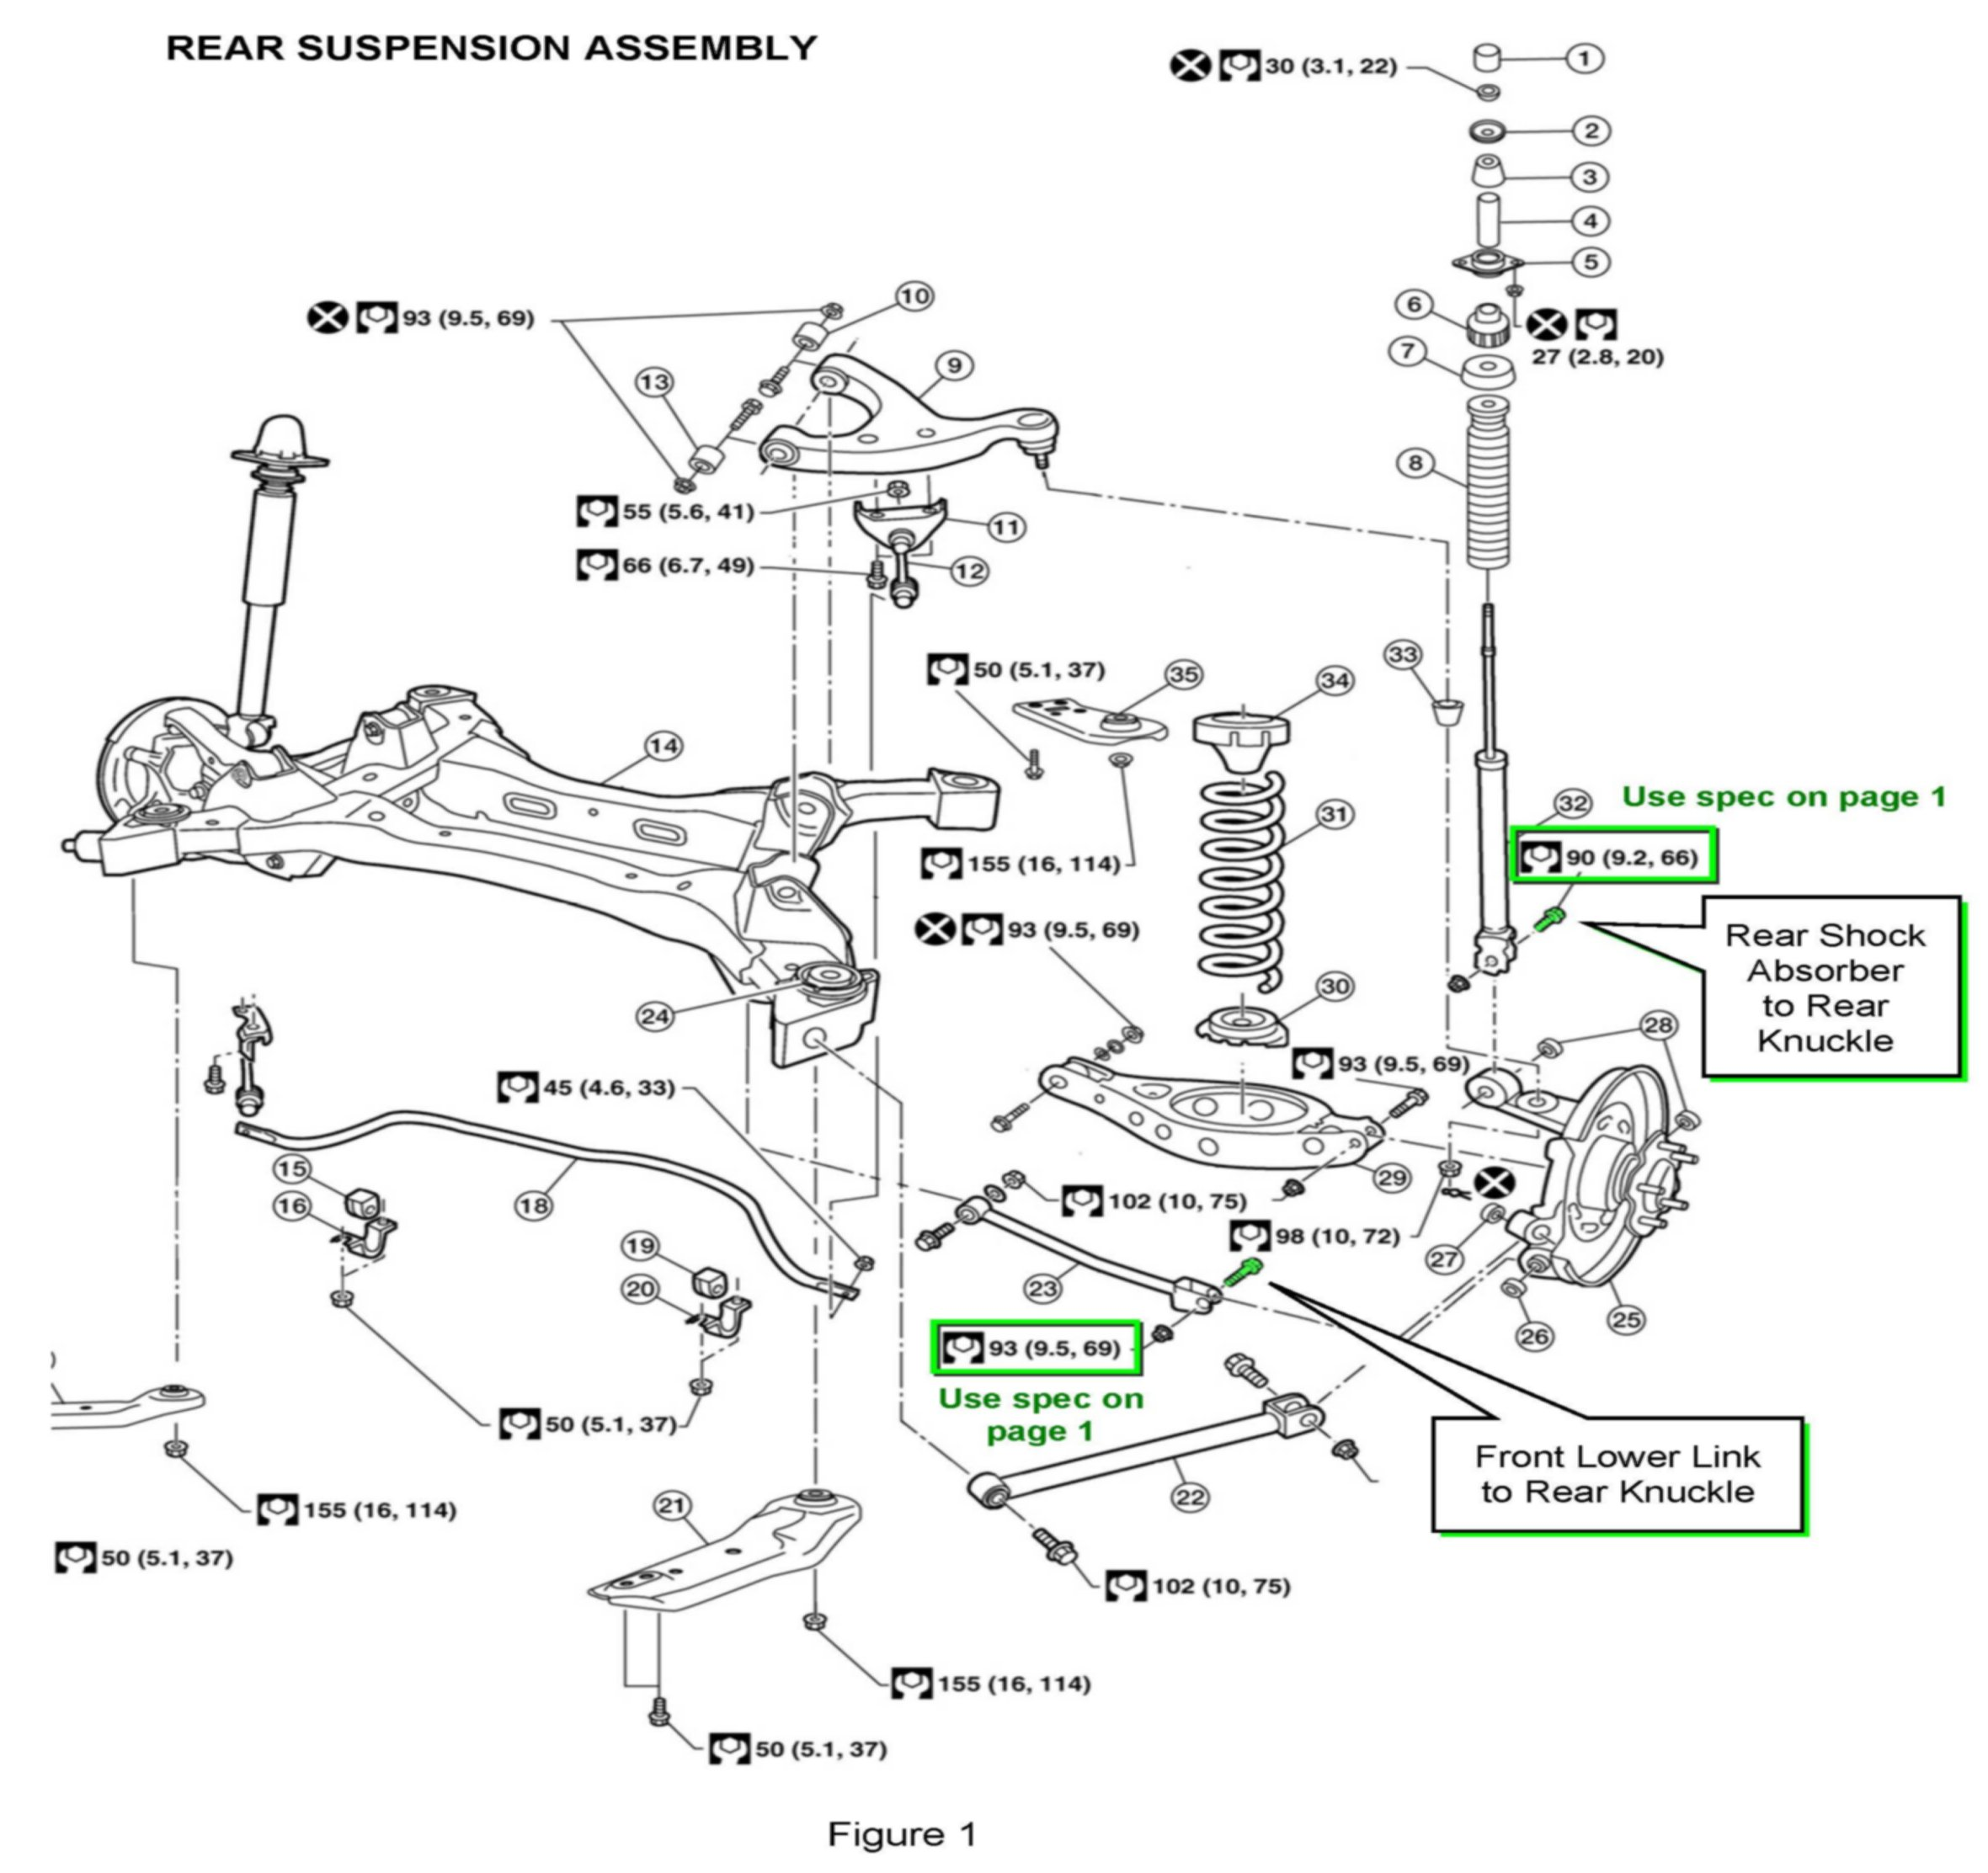 Steering Knuckle Diagram on 2006 toyota rav4 front suspension diagram